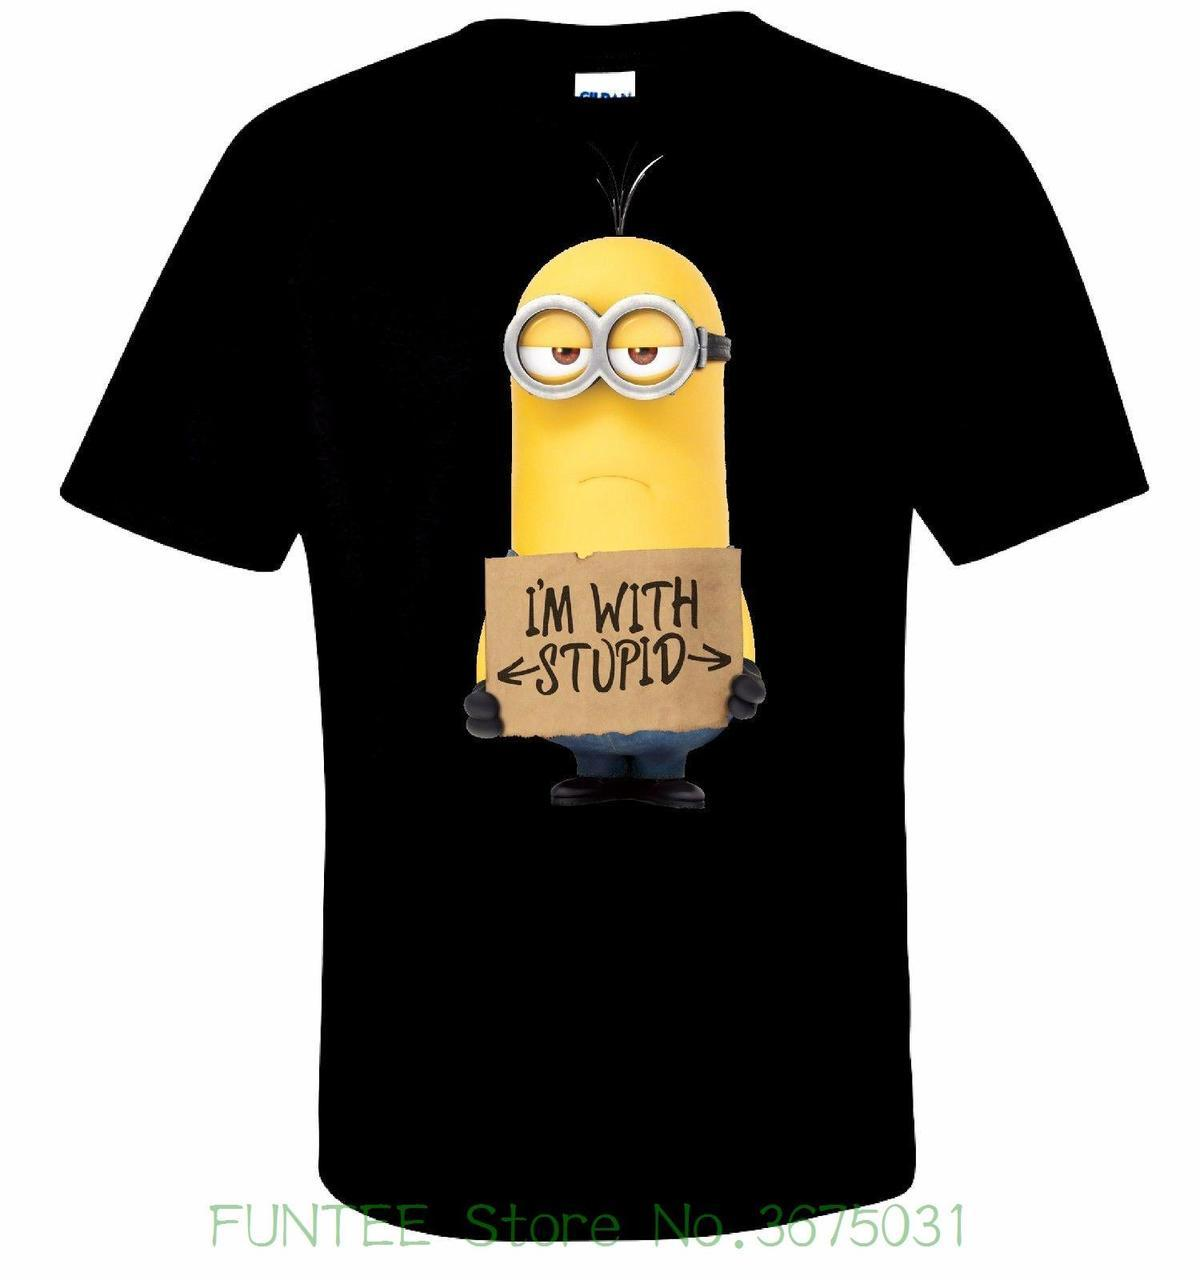 Stupid T Shirts >> Women S Tee Minion I M With Stupid T Shirt 100 Cotton Tee By Bmf Apparel High Quality 100 Cotton